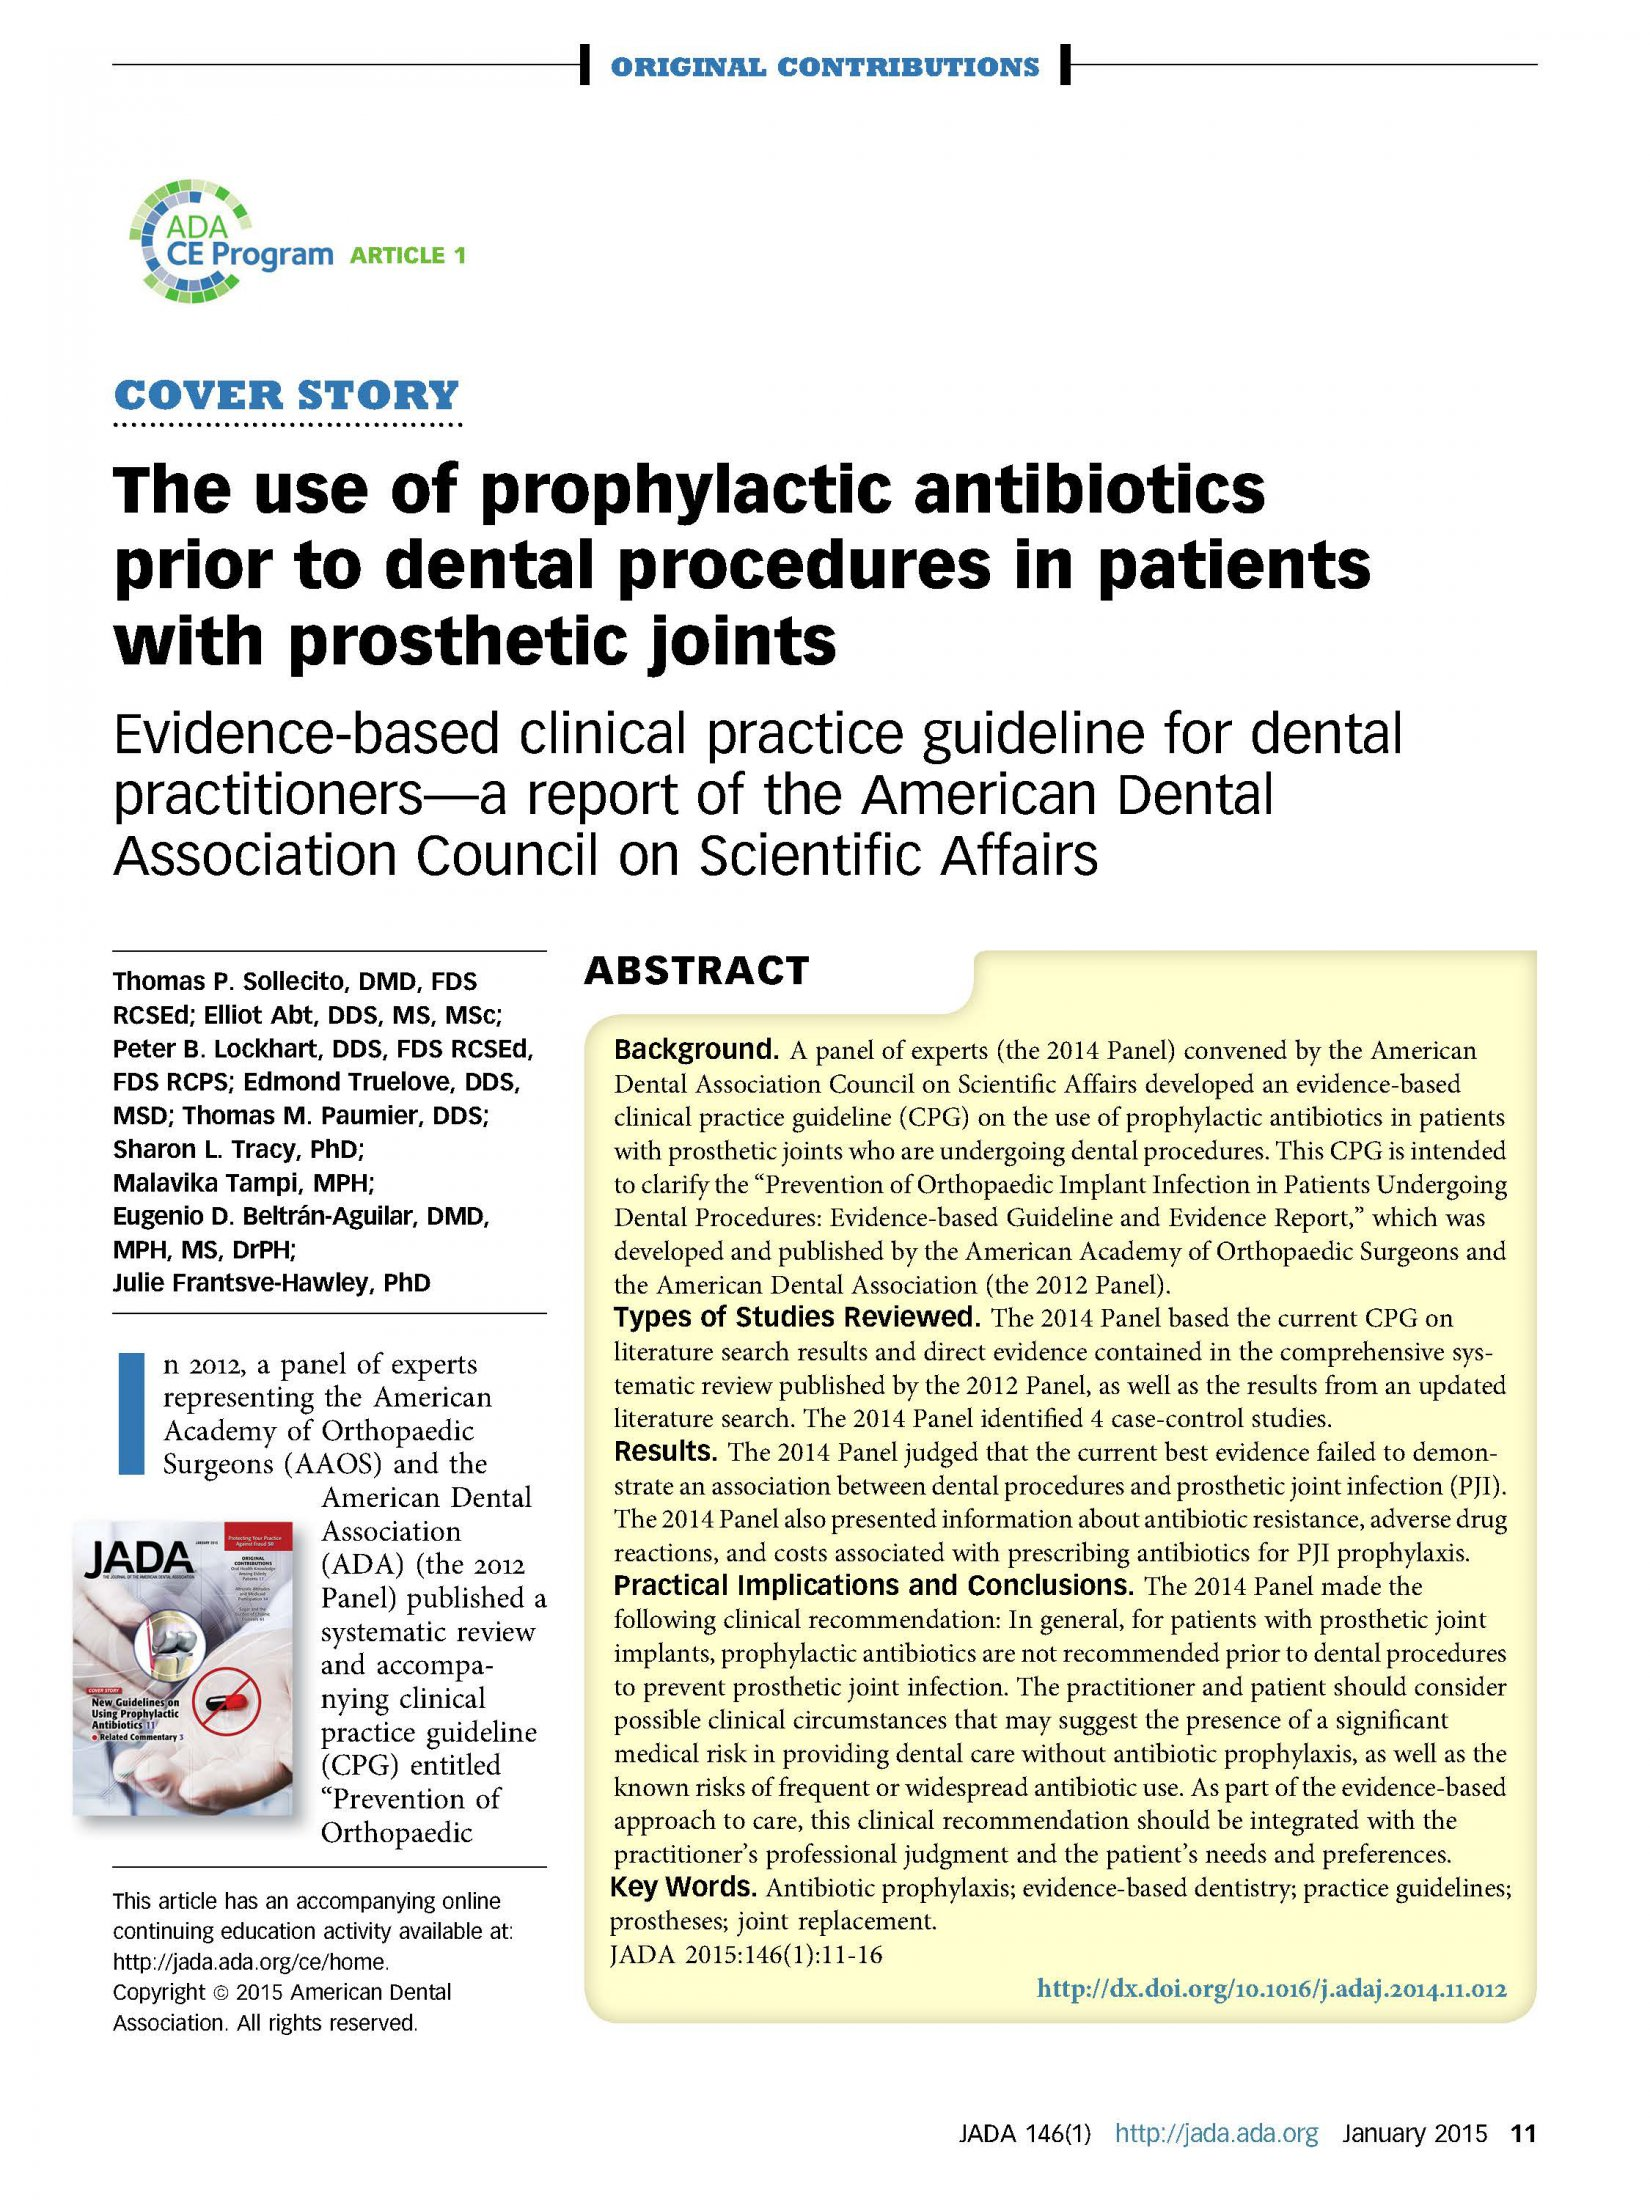 The use of prophylactic antibiotics prior to dental proc in patients with prosth joints 1-2015_Page_01